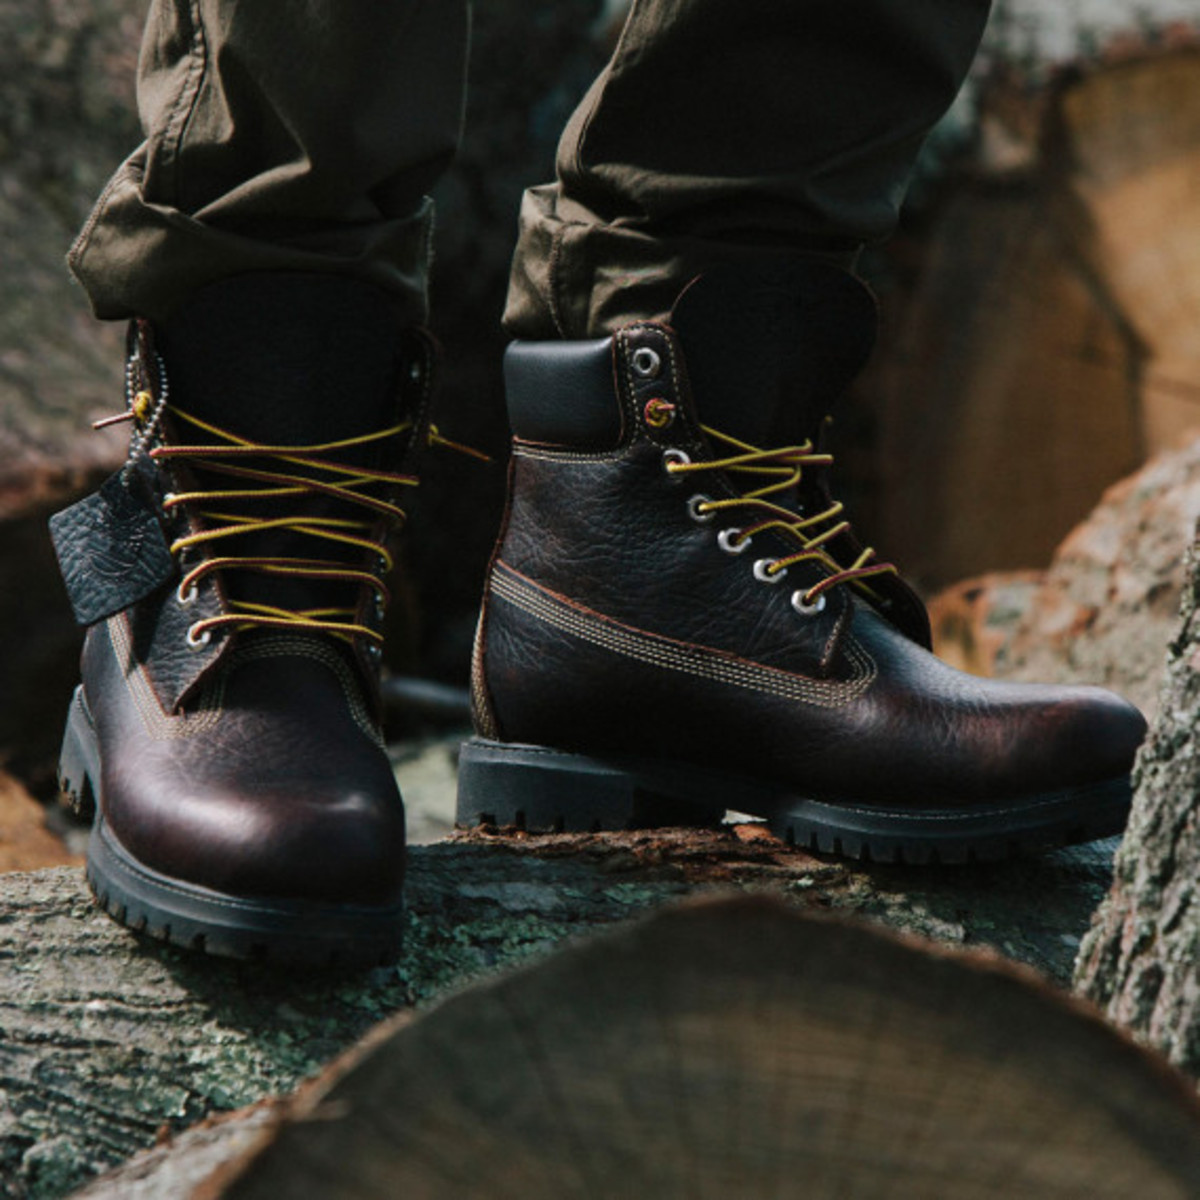 new product 4f14b 0e1c2 ... Timberland - Hazel Highway Collection Lookbook by KnowUse and Street  Etiquette - ...